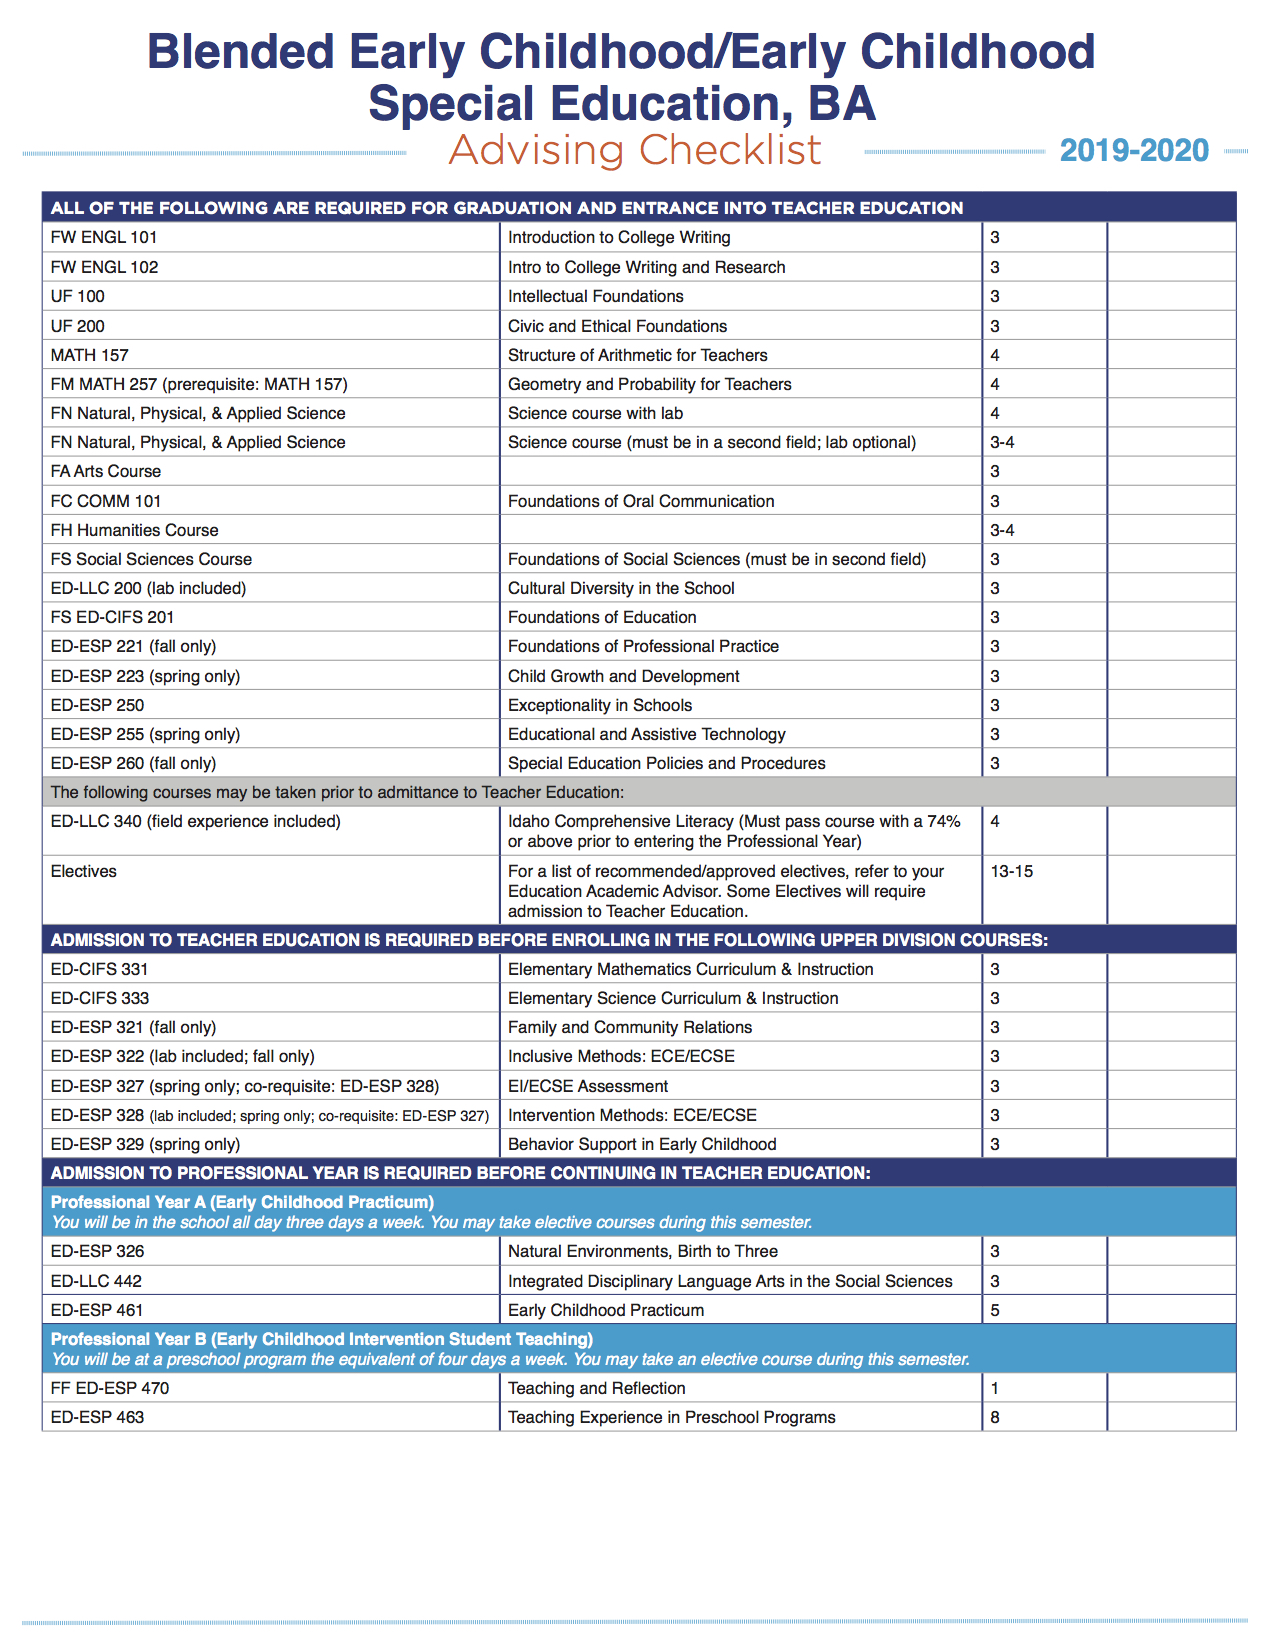 Visual Advising Checklist